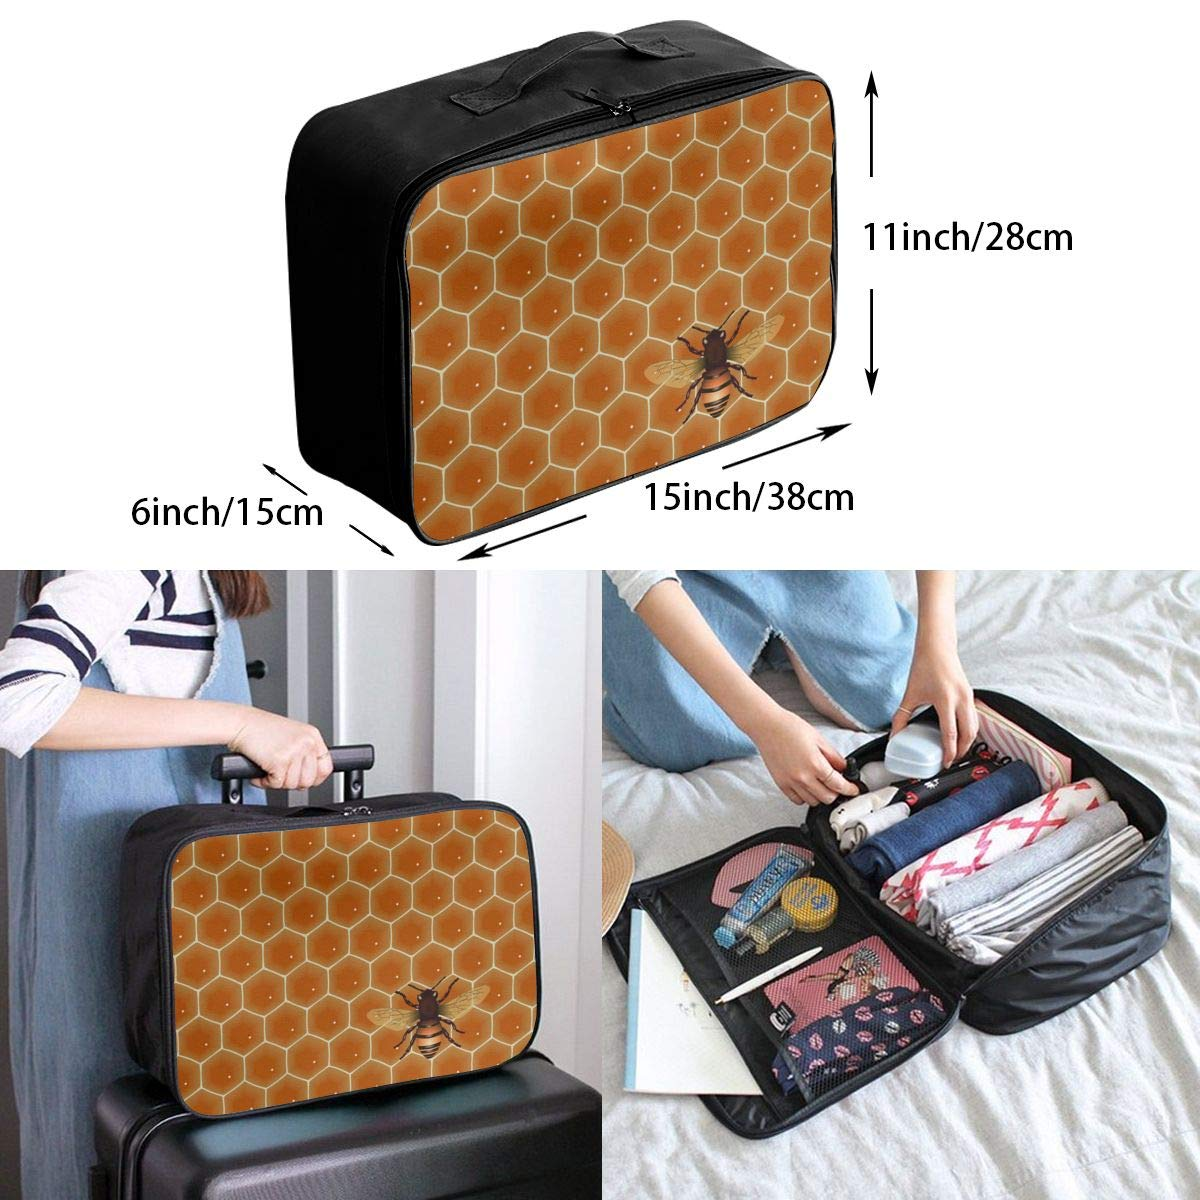 ADGAI Bees and Hive Canvas Travel Weekender Bag,Fashion Custom Lightweight Large Capacity Portable Luggage Bag,Suitcase Trolley Bag